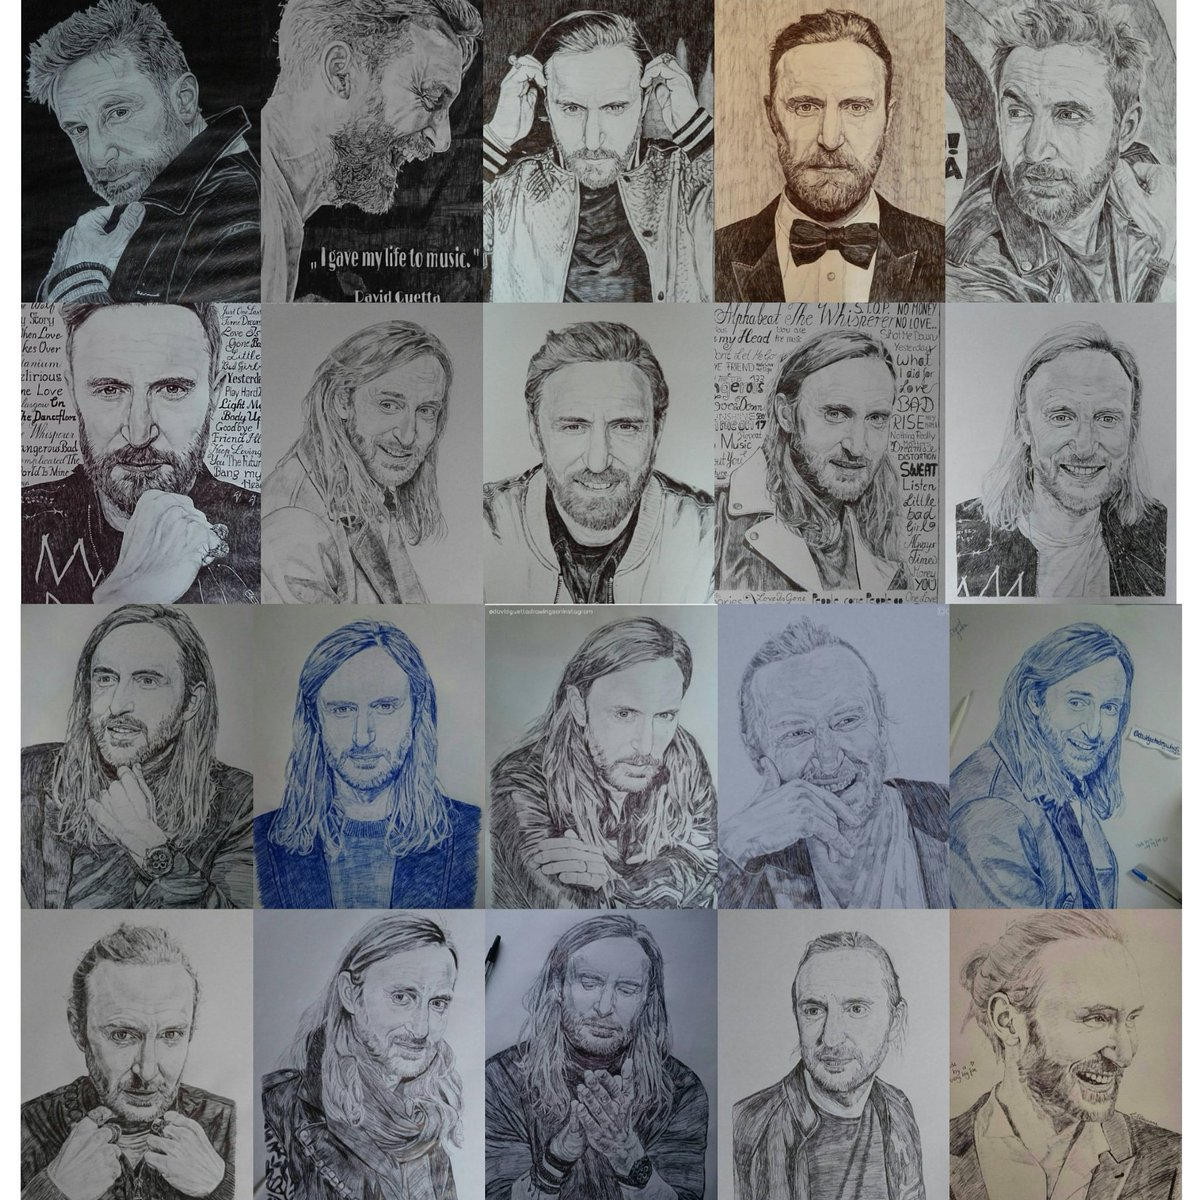 RT @leapumpanella11: Unbelievable! I finished my 20th drawing of @davidguetta yesterday! https://t.co/htiAvjyZHG